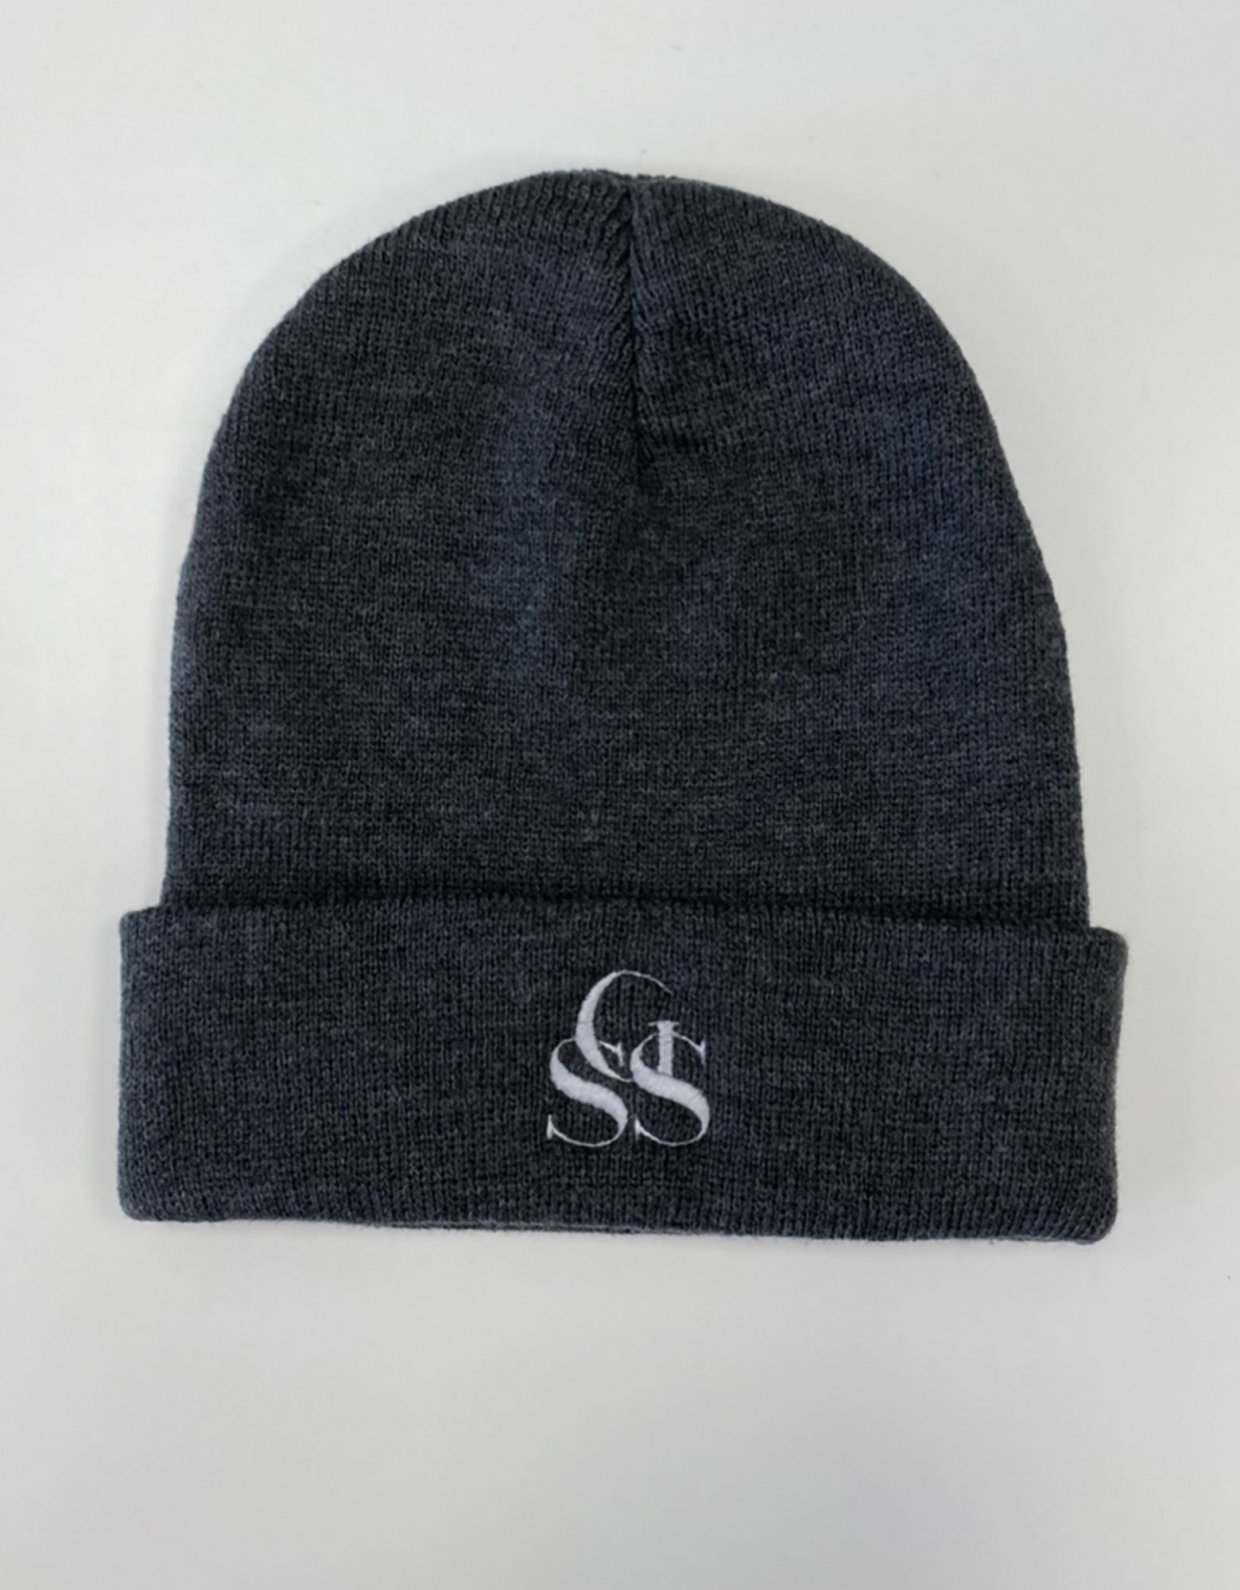 Sunset go SSG Beanie grey